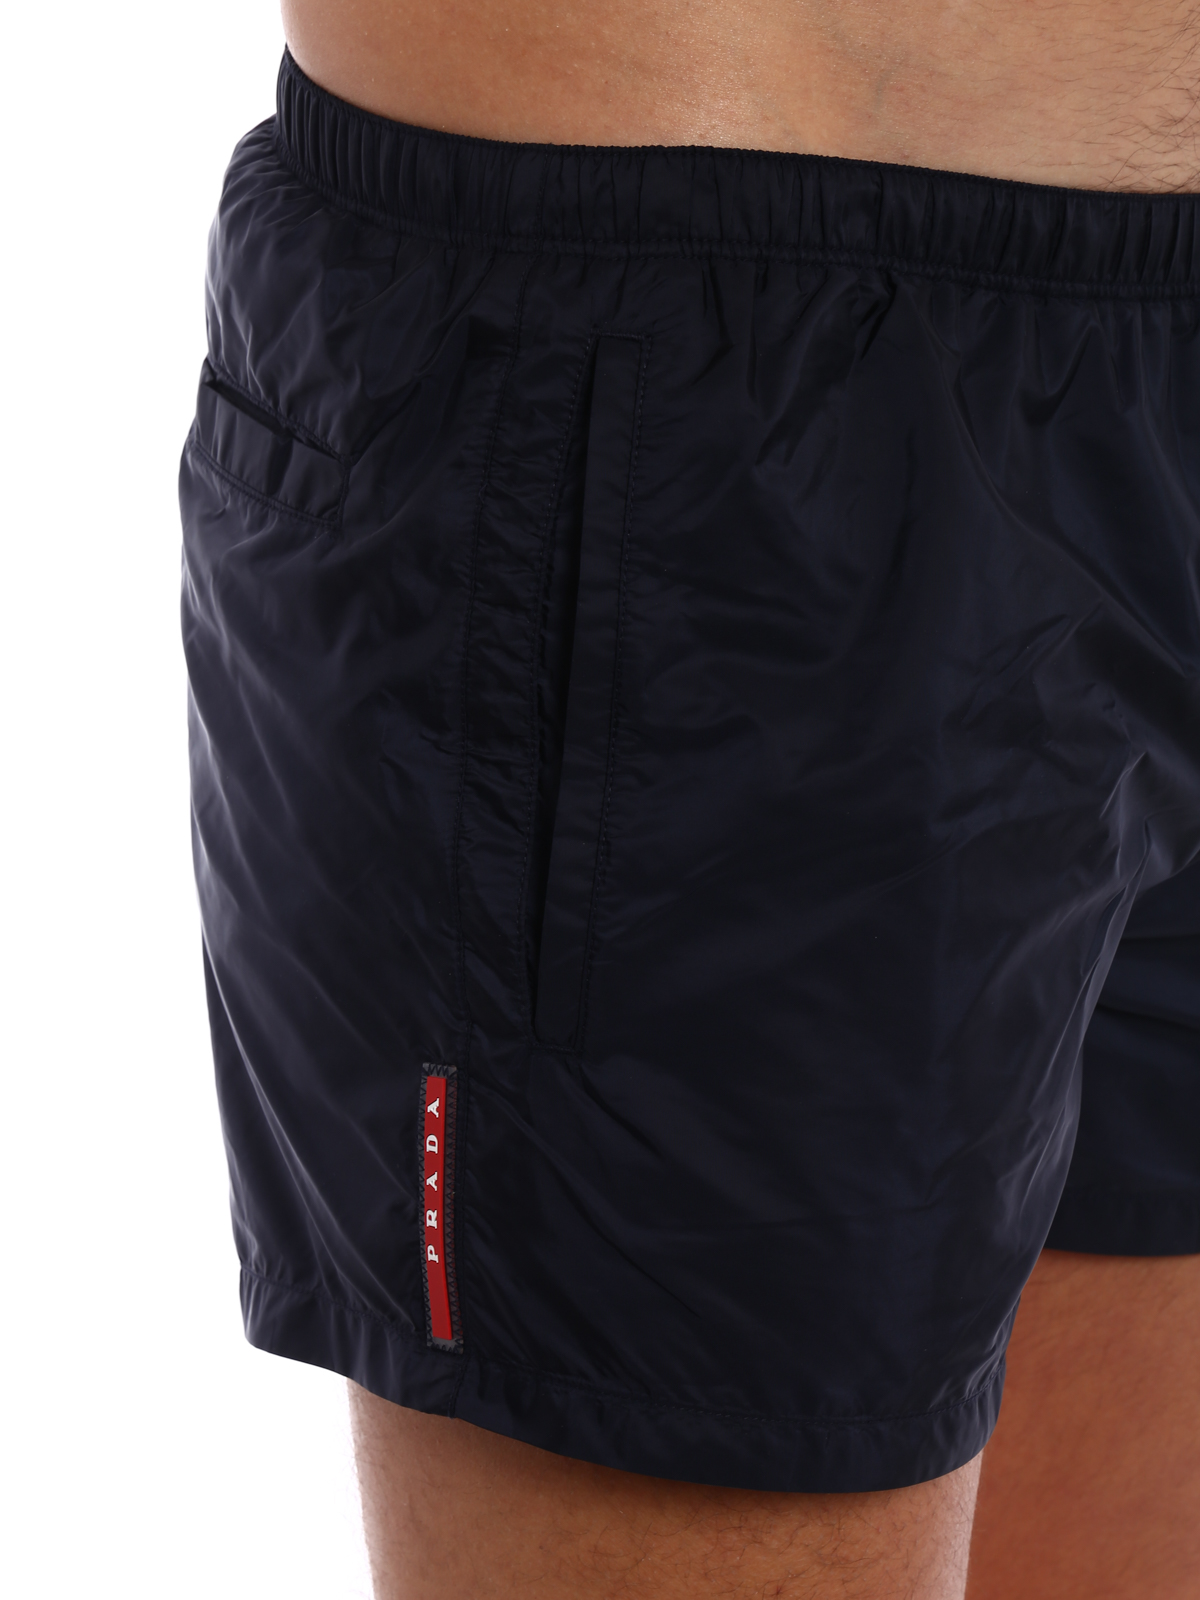 c3005ee5adbfa Prada - Dark blue nylon swim shorts - Swim shorts & swimming trunks ...